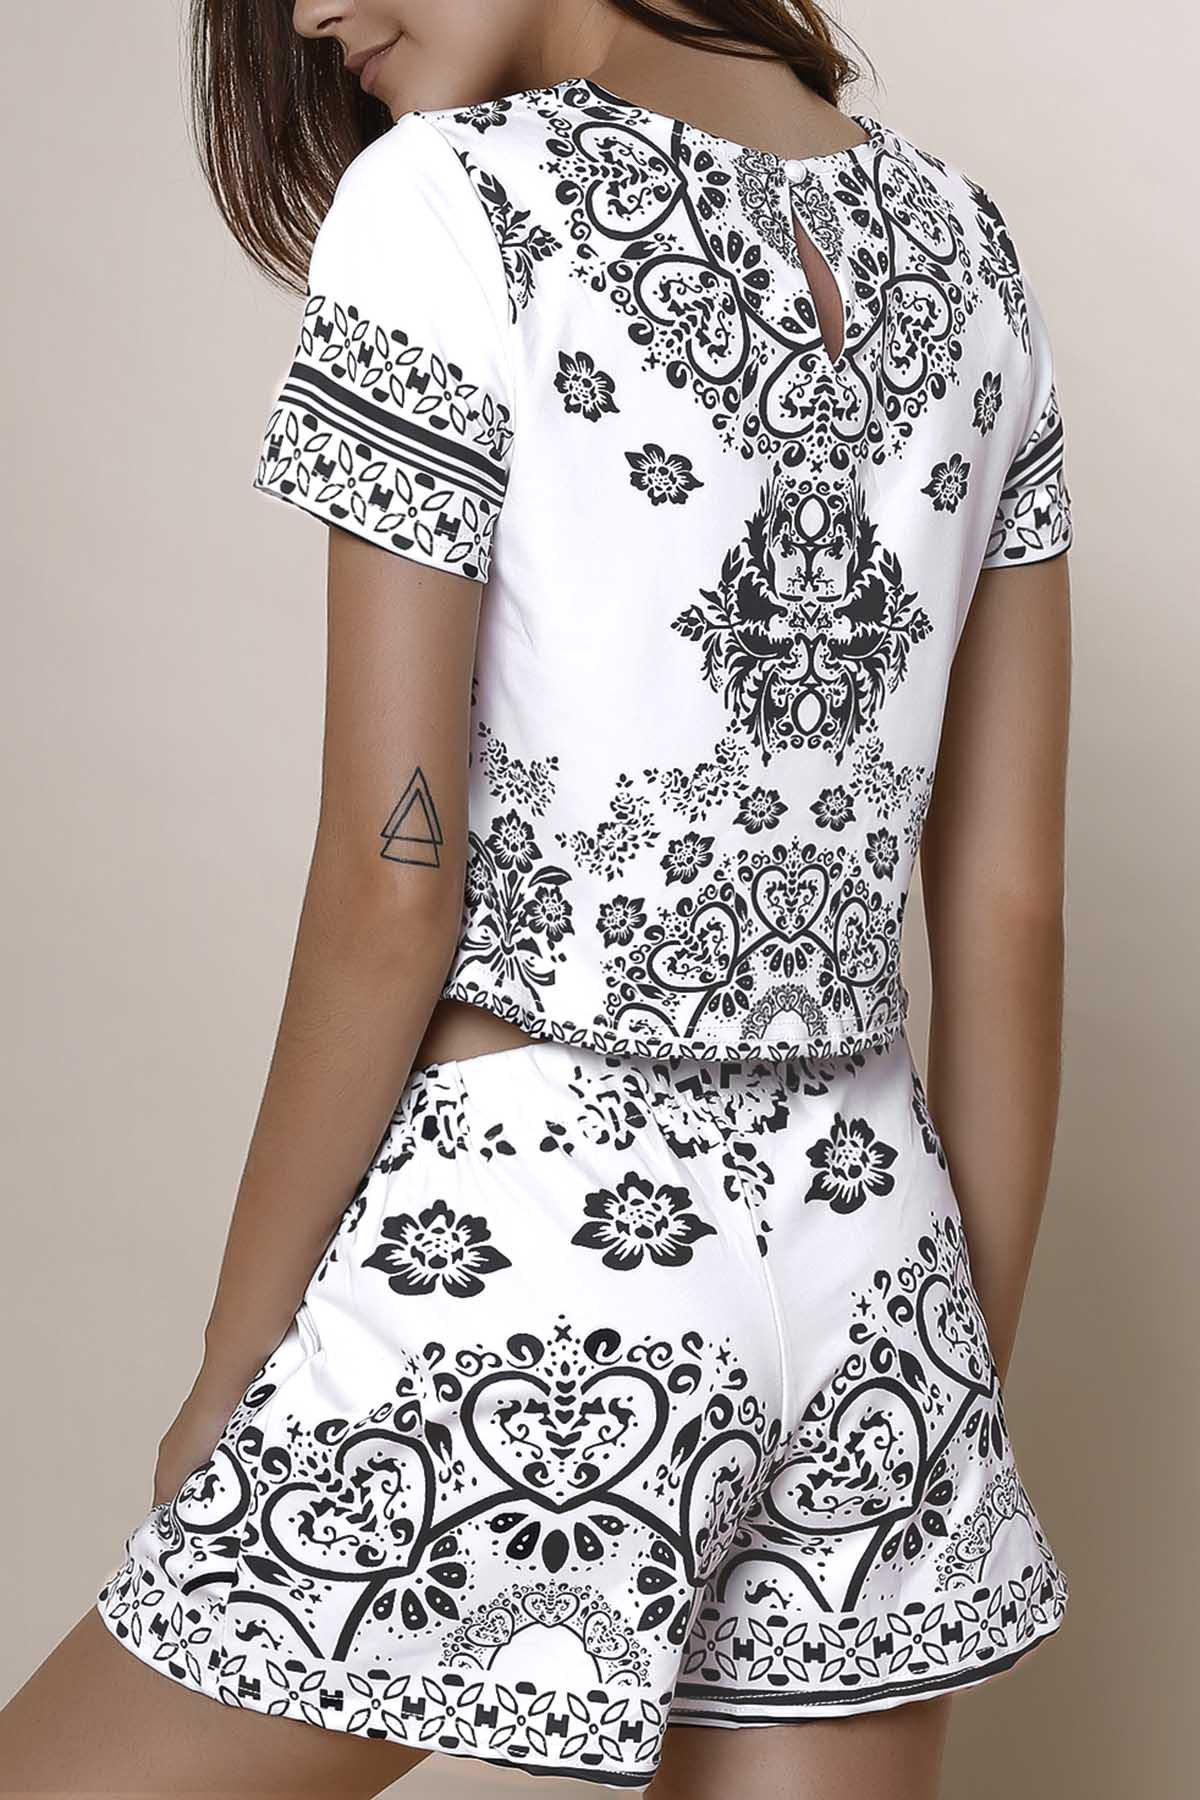 Stylish Round Neck Short Sleeve Crop Top + Porcelain Print High-Waisted Shorts Women's Twinset